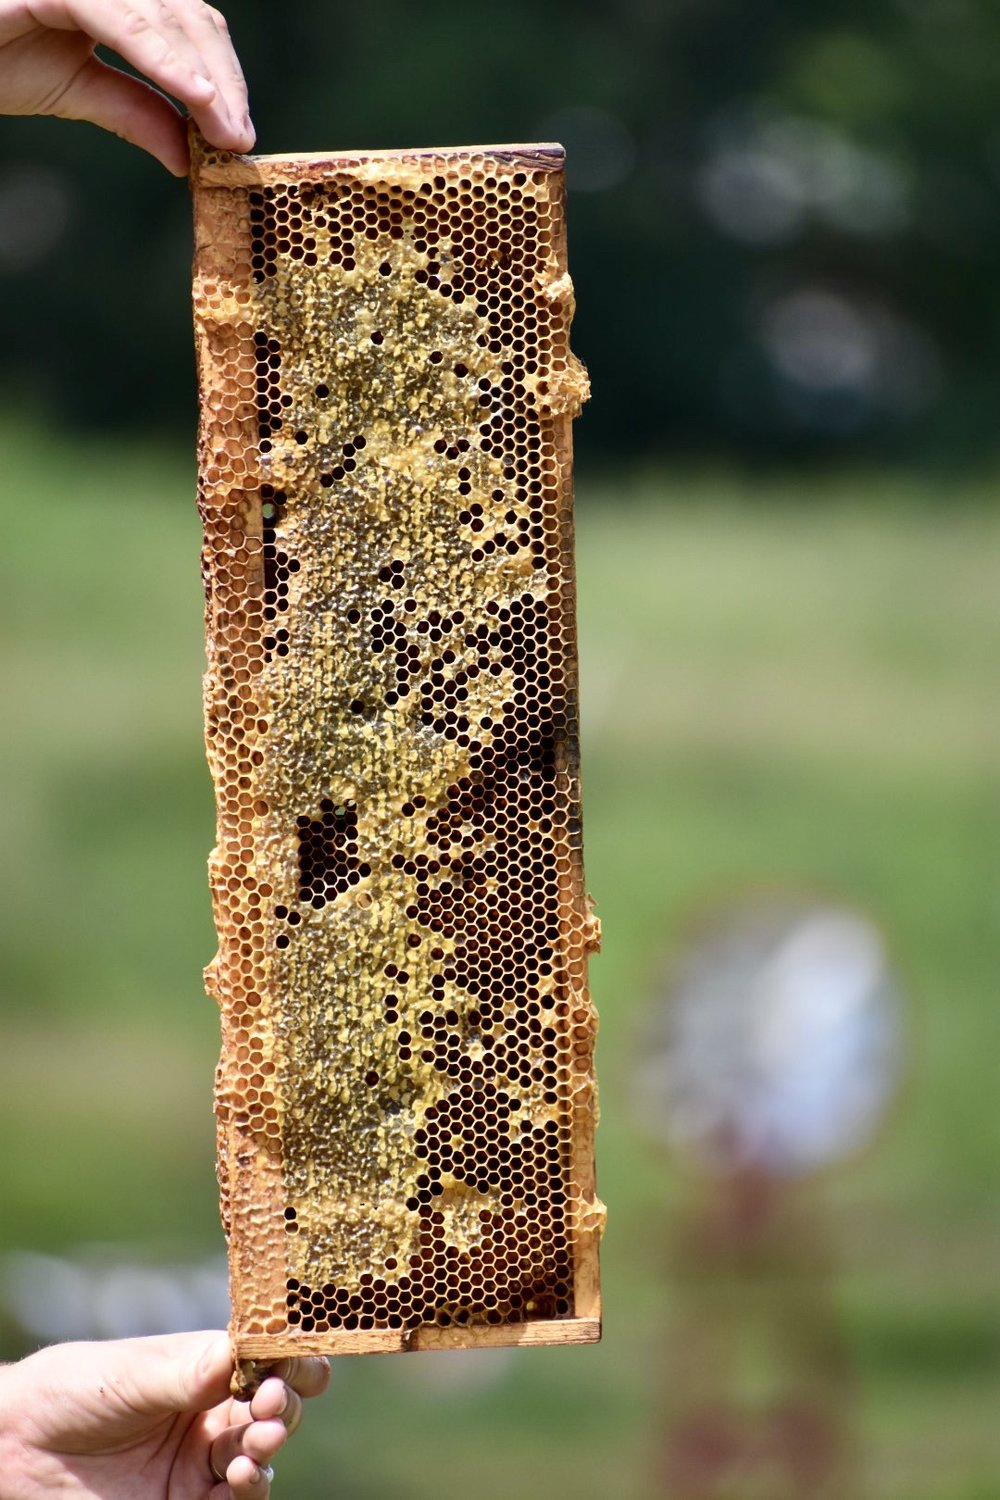 Frames Host A Hive Gaiser Bee Co.